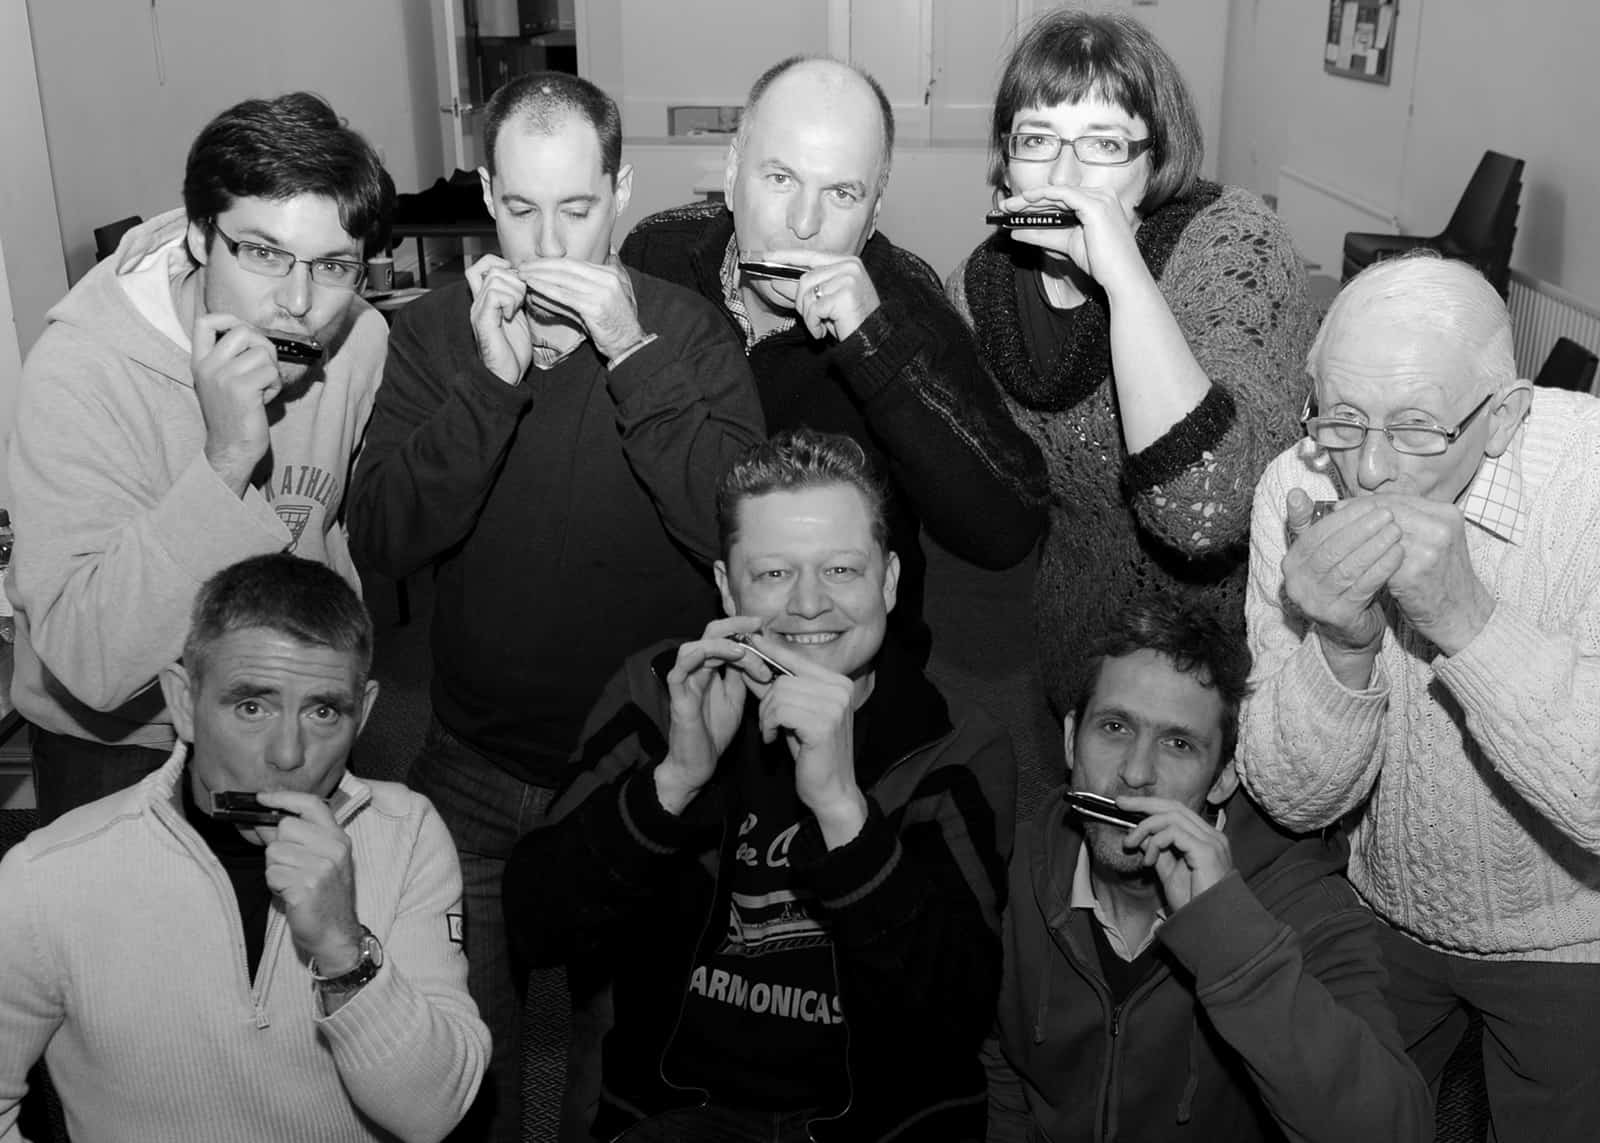 Harmonica for small team building